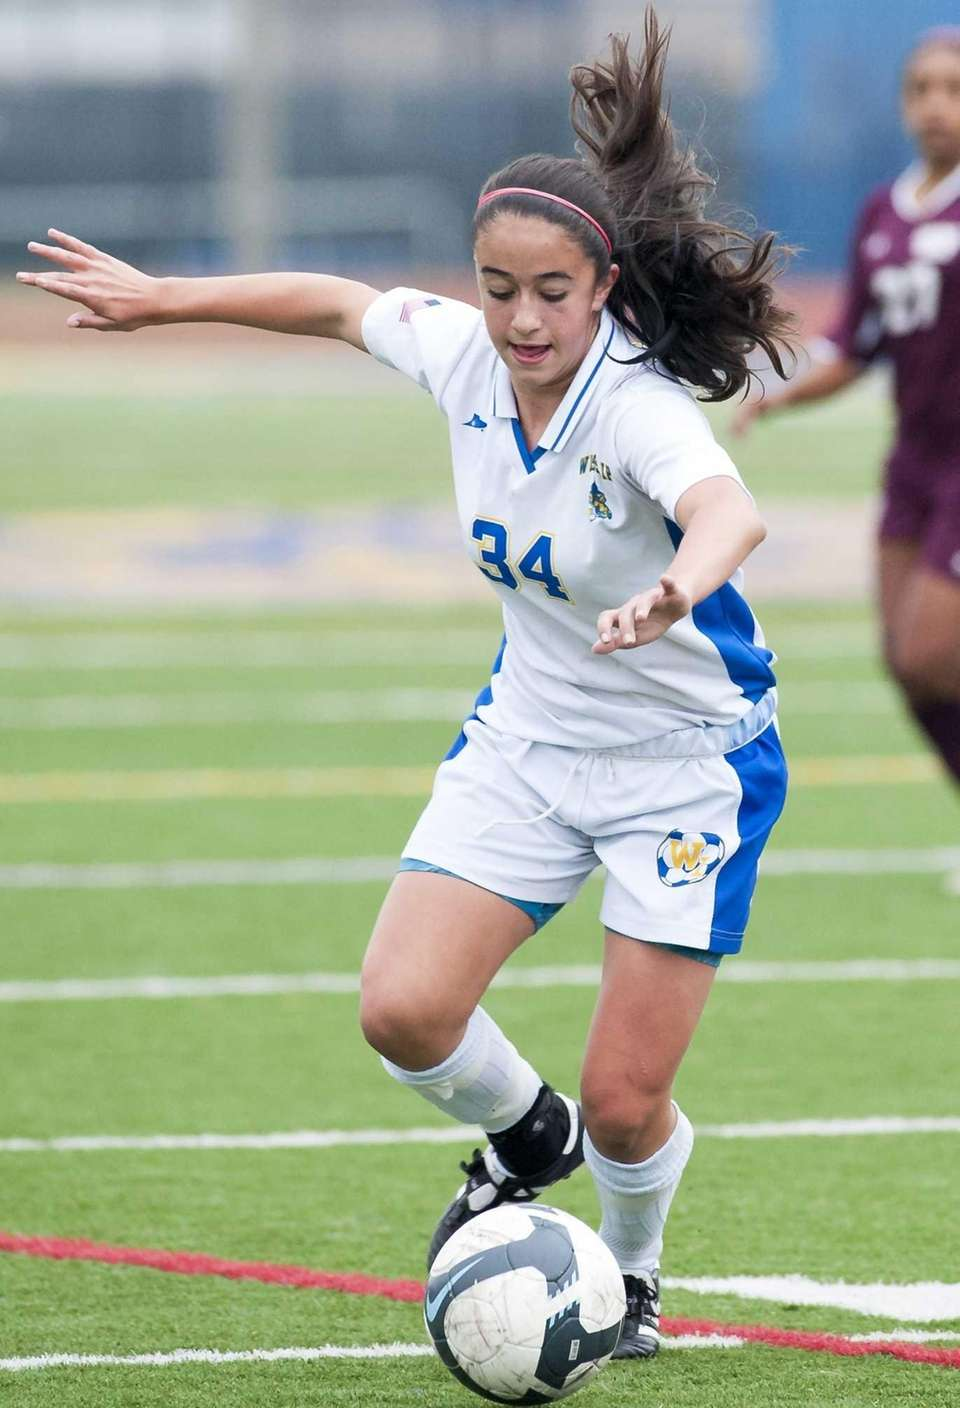 West Islip's Paige Sherlock, who scored her team's